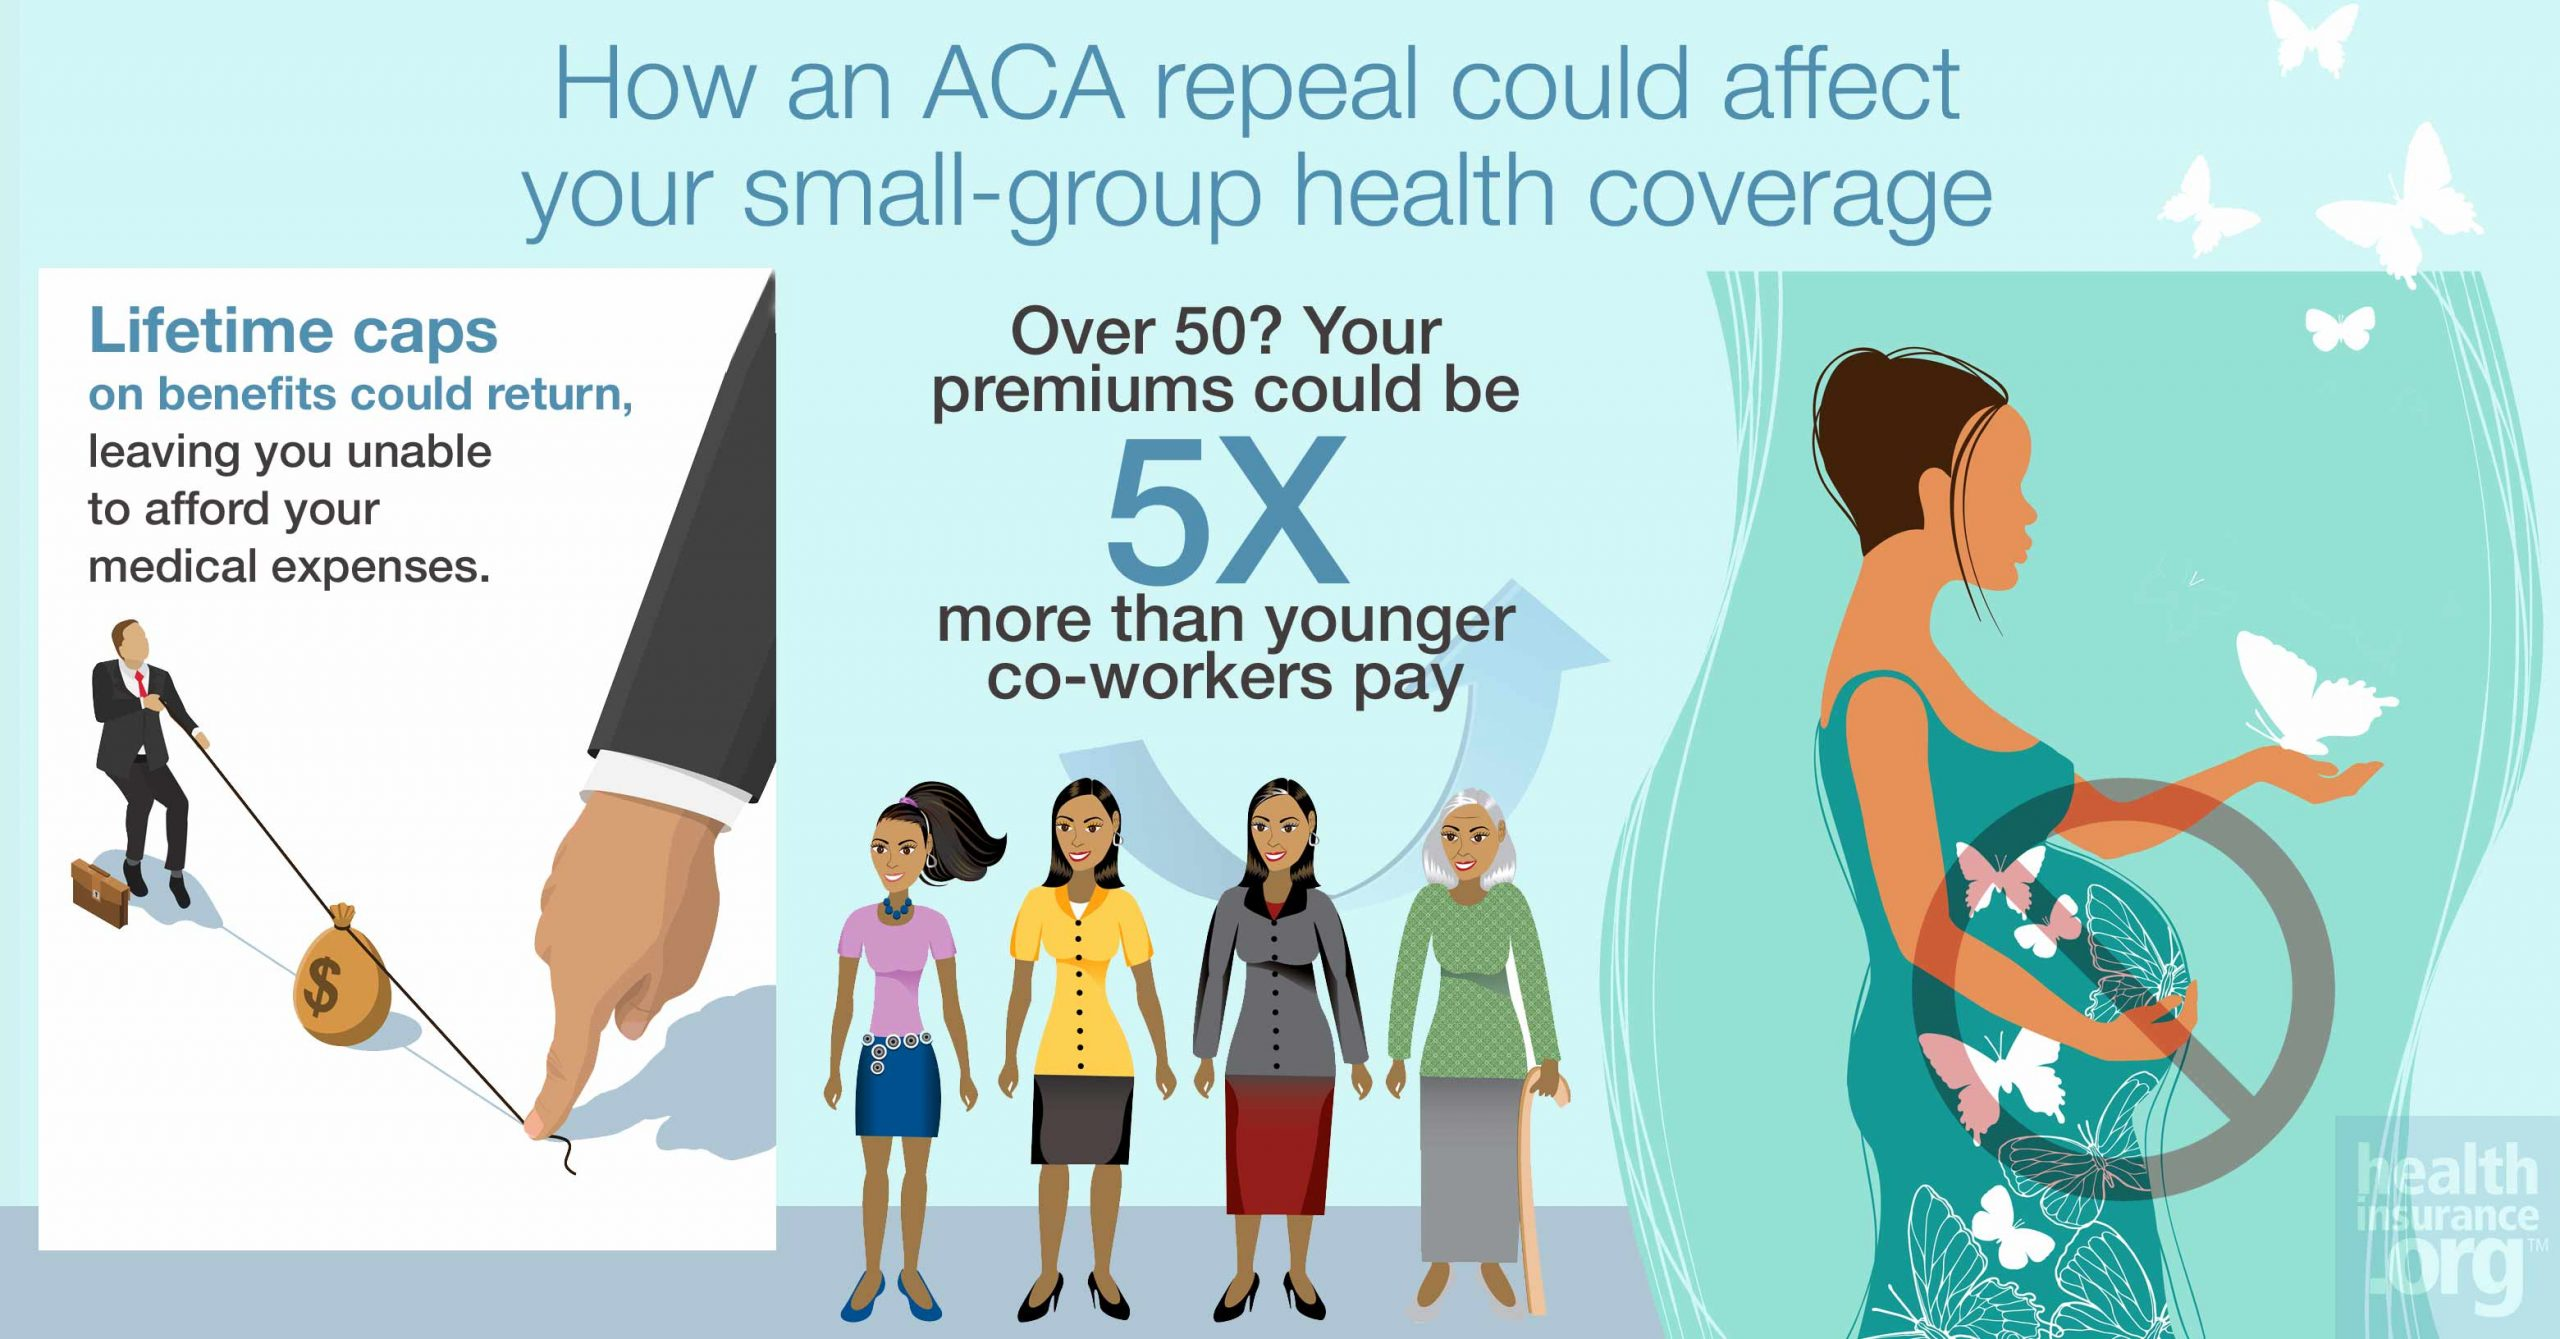 What ACA repeal could do to small-group coverage photo